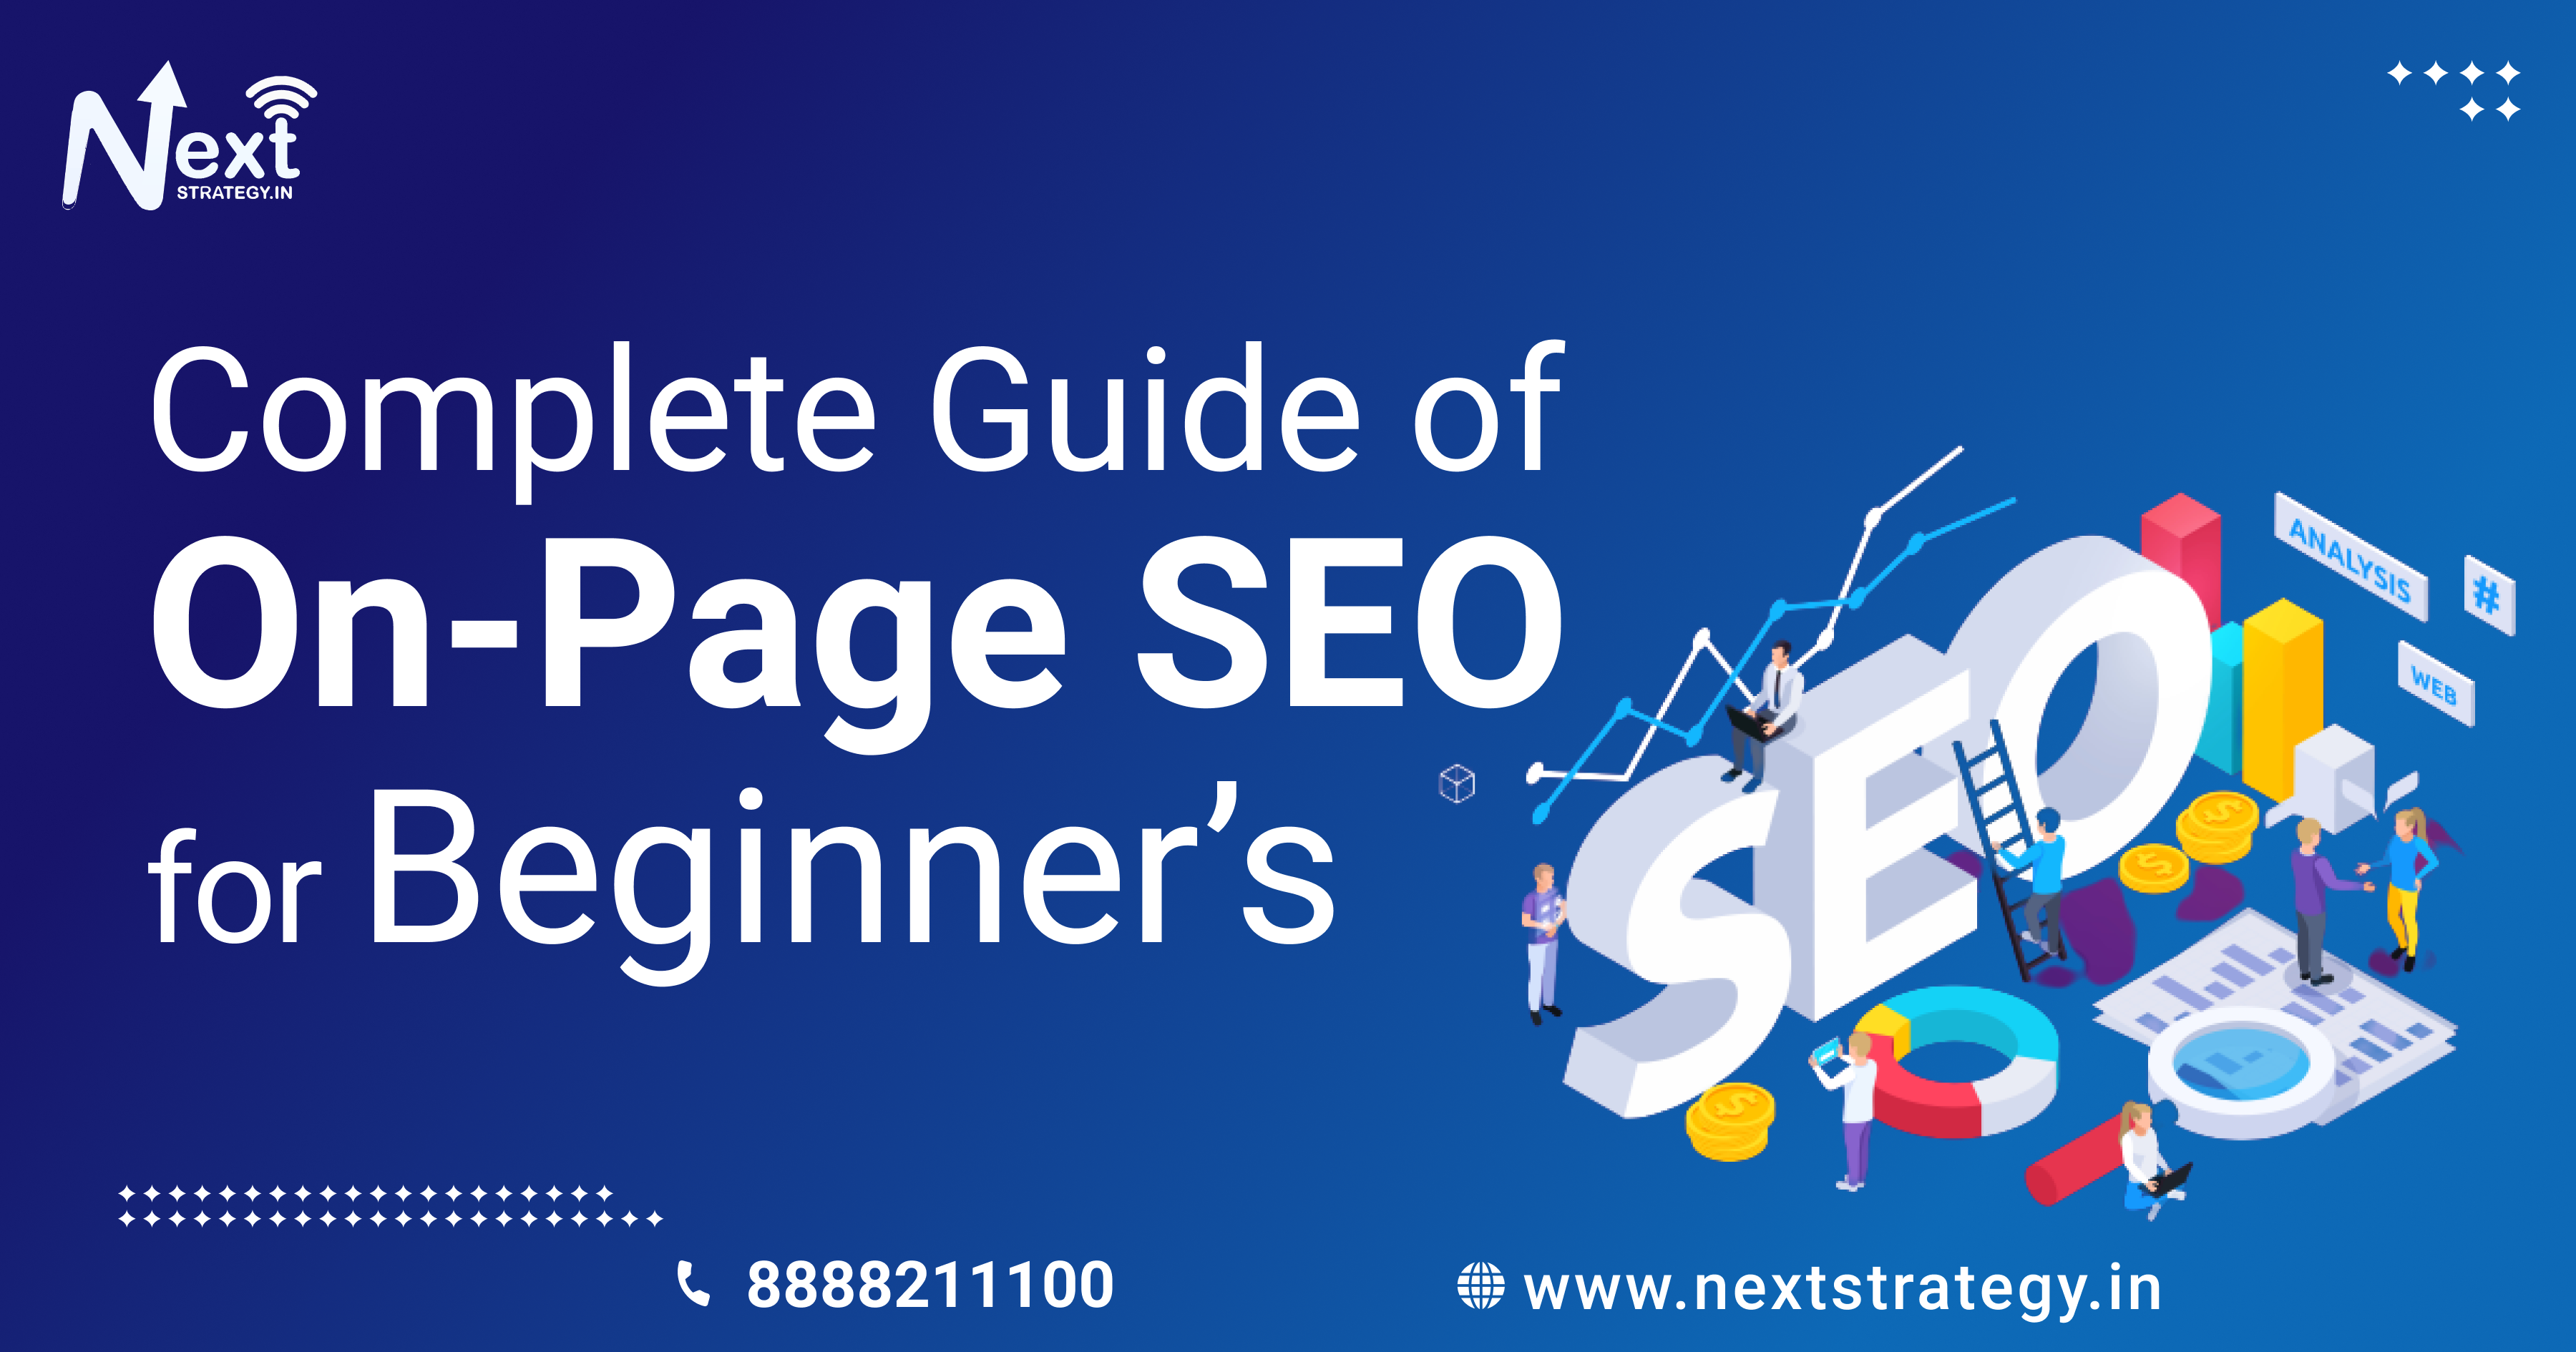 On-Page SEO: Complete Beginner's Guide - Nextstrategy.in